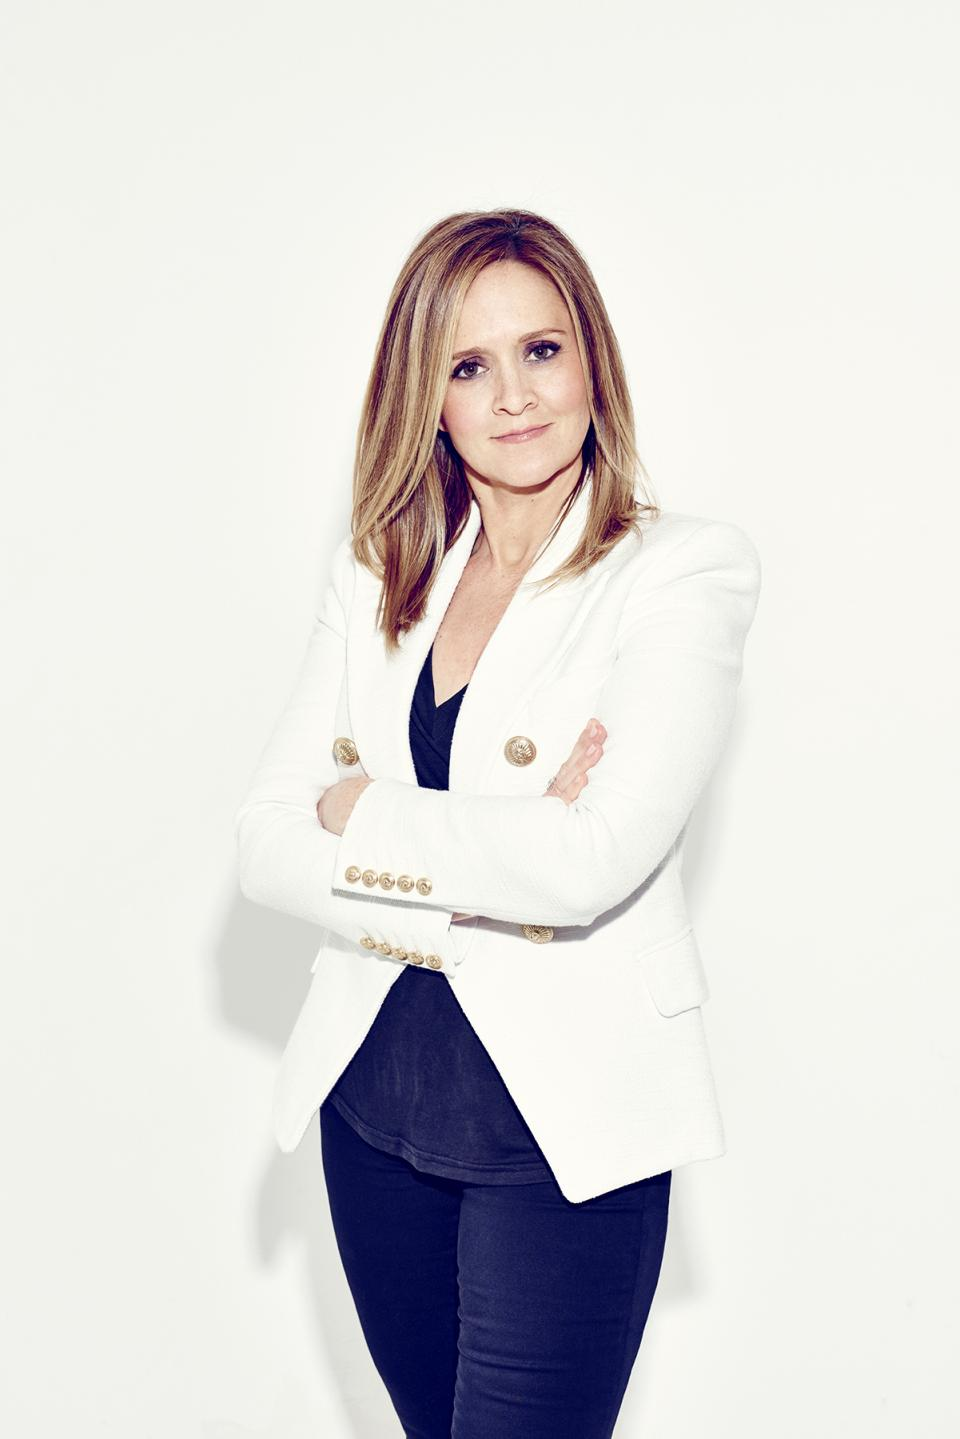 Samantha Bee - The most prominent female comedian on late night TV